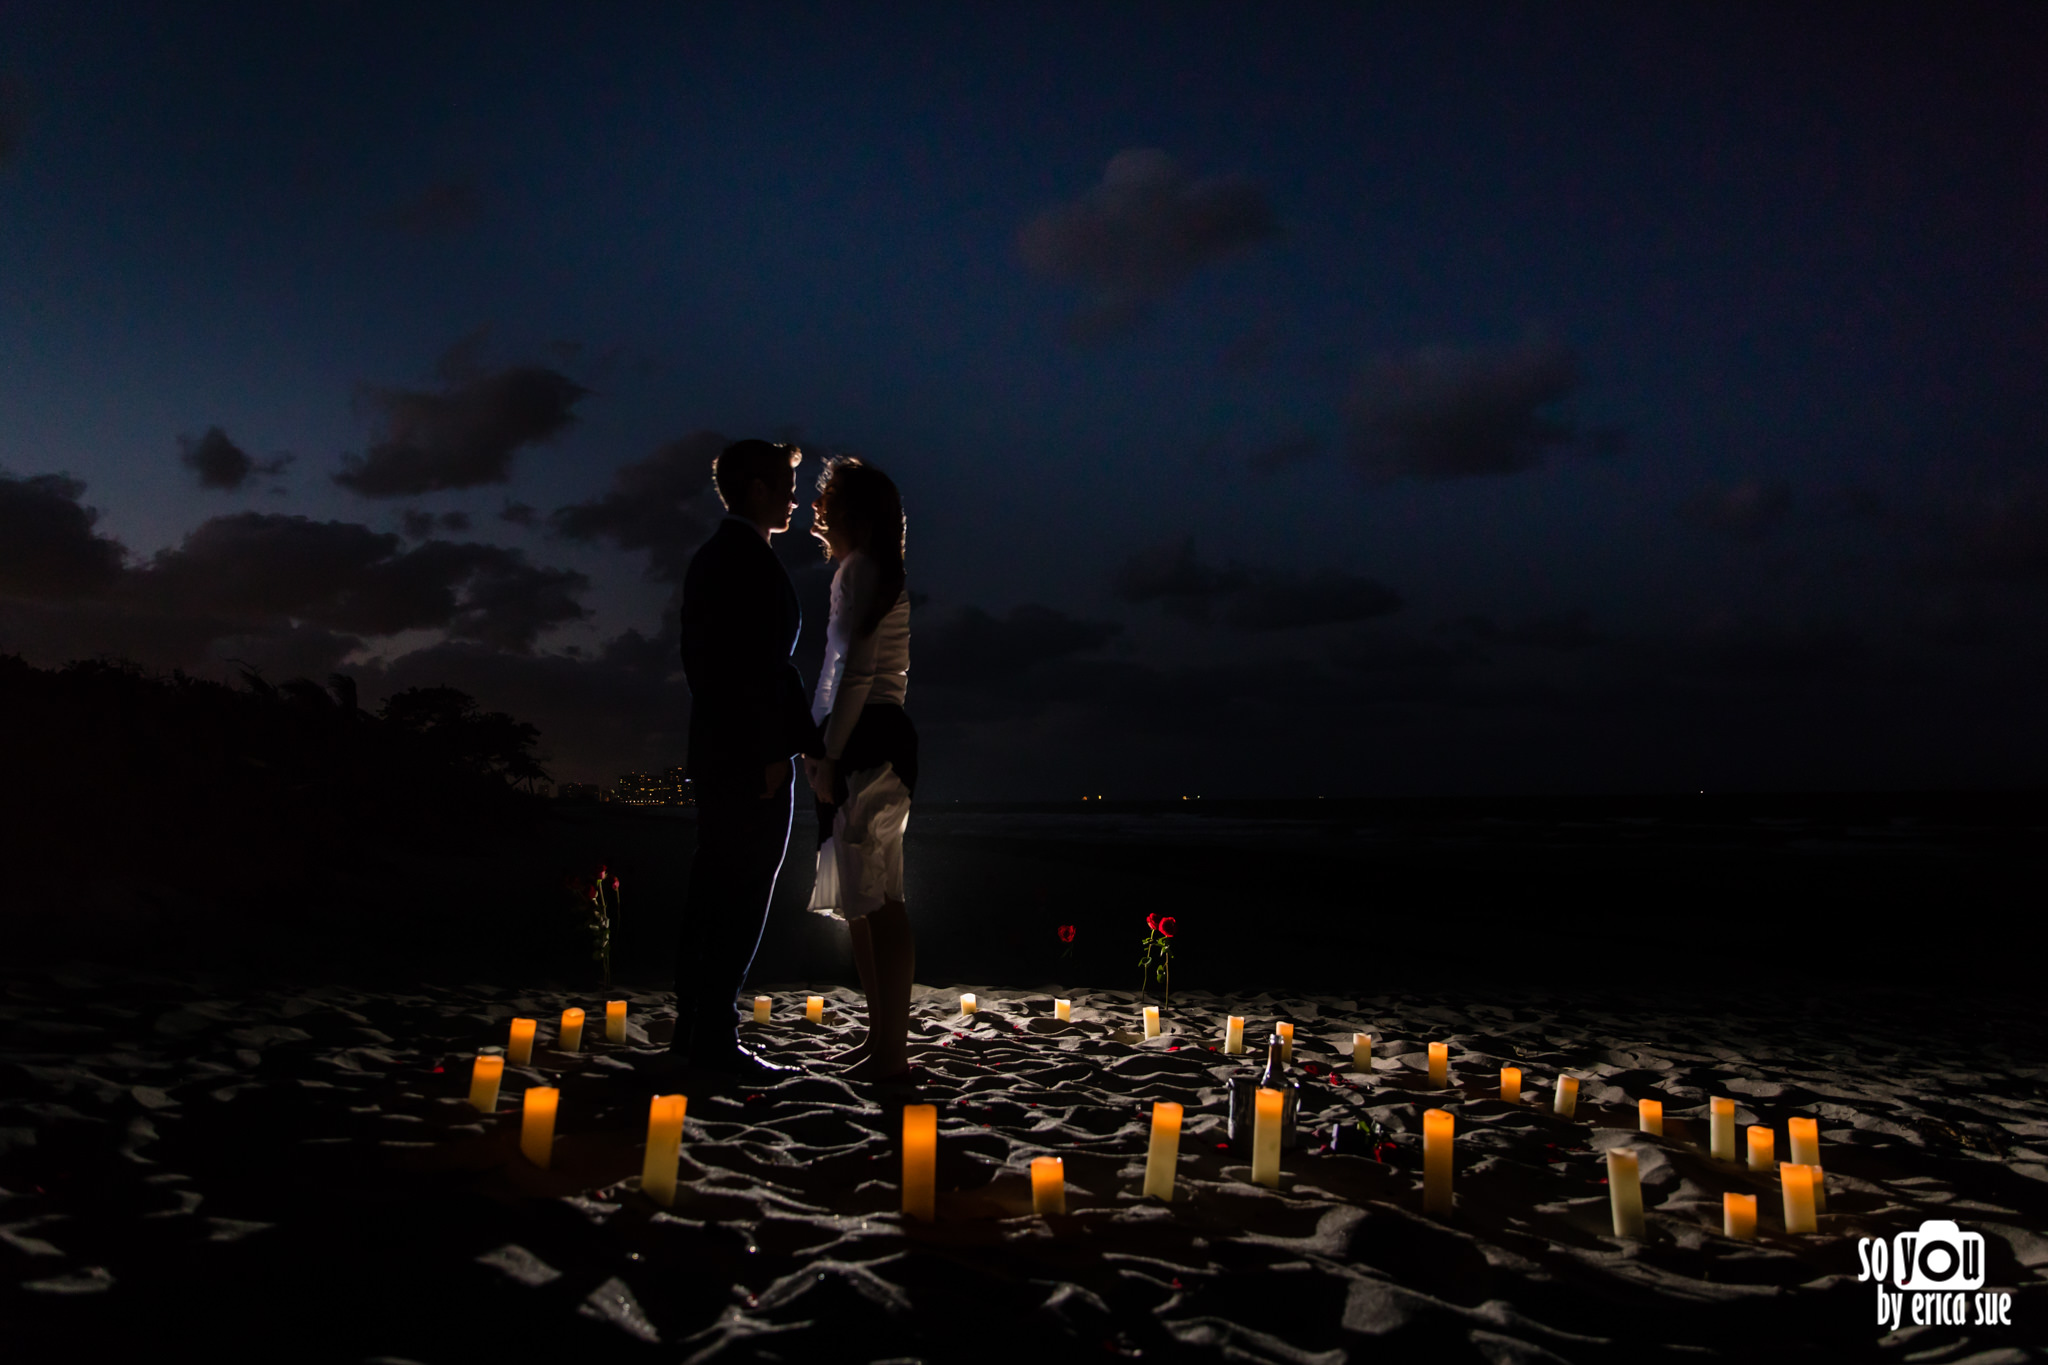 so-you-by-erica-sue-hollywood-fl-photographer-beach-engagement-flowers-candles-5357.jpg